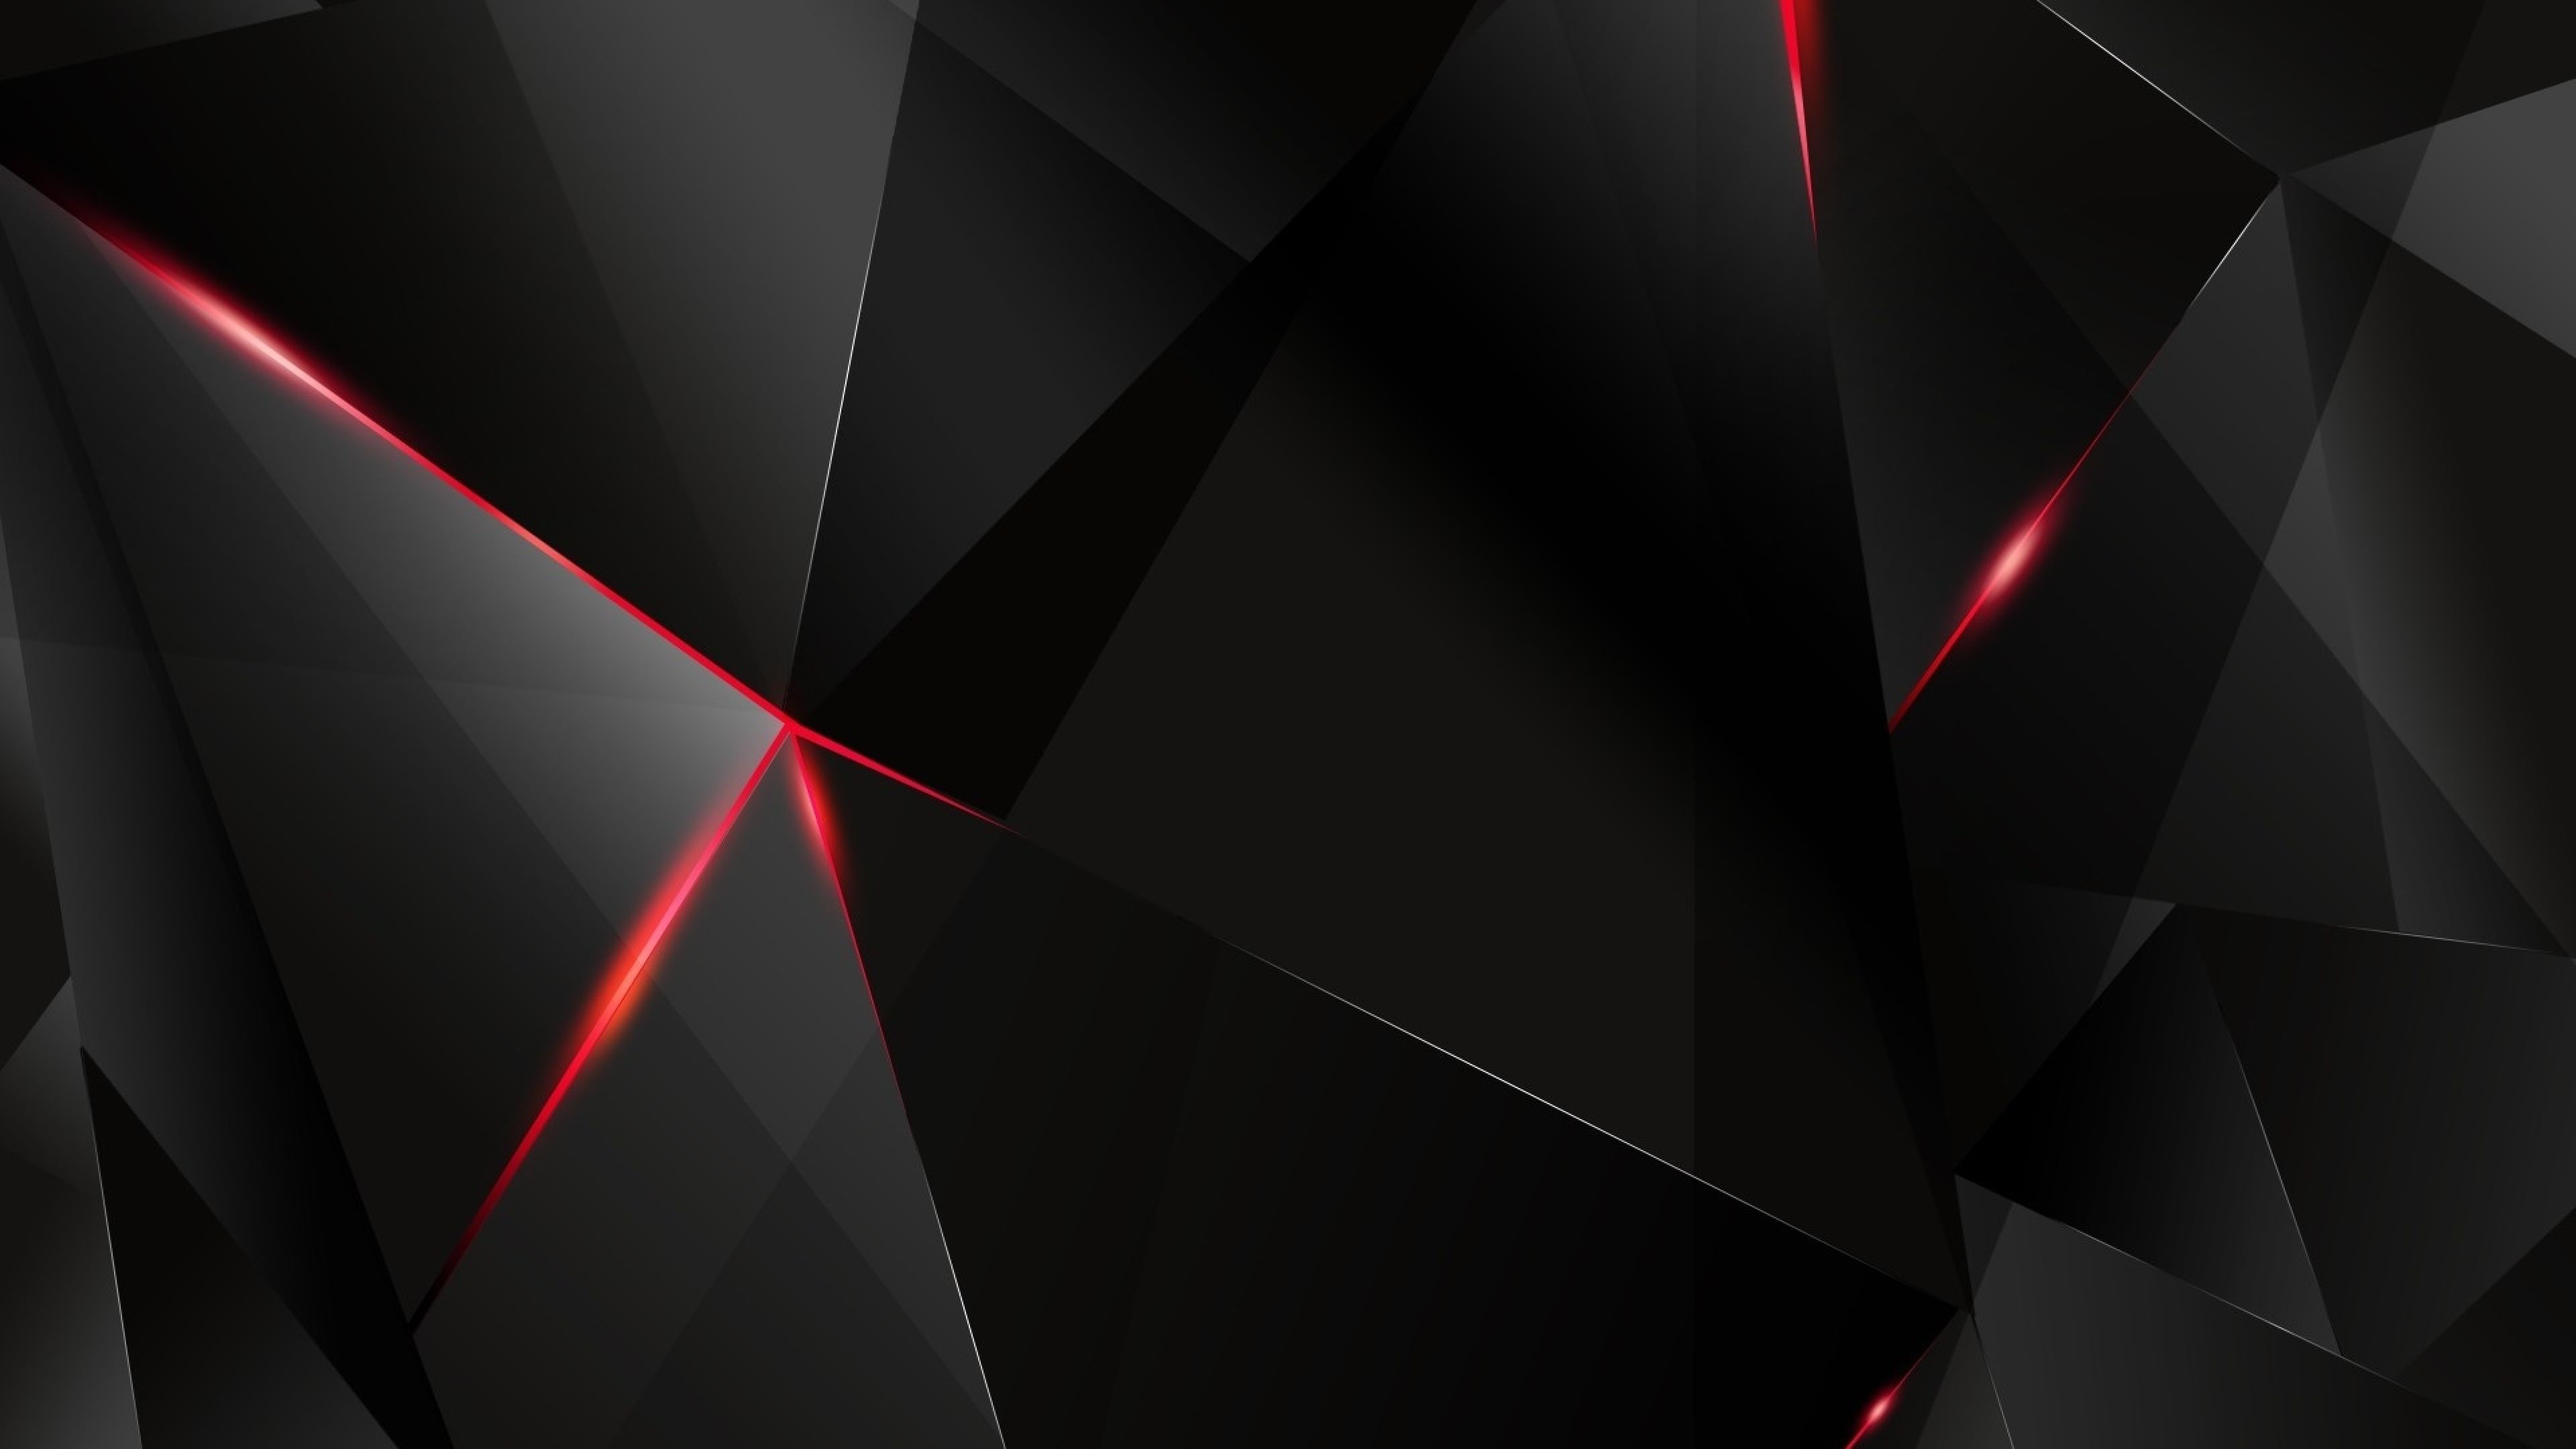 Black Wallpapers Super Amoled Dark Background k APK download rh